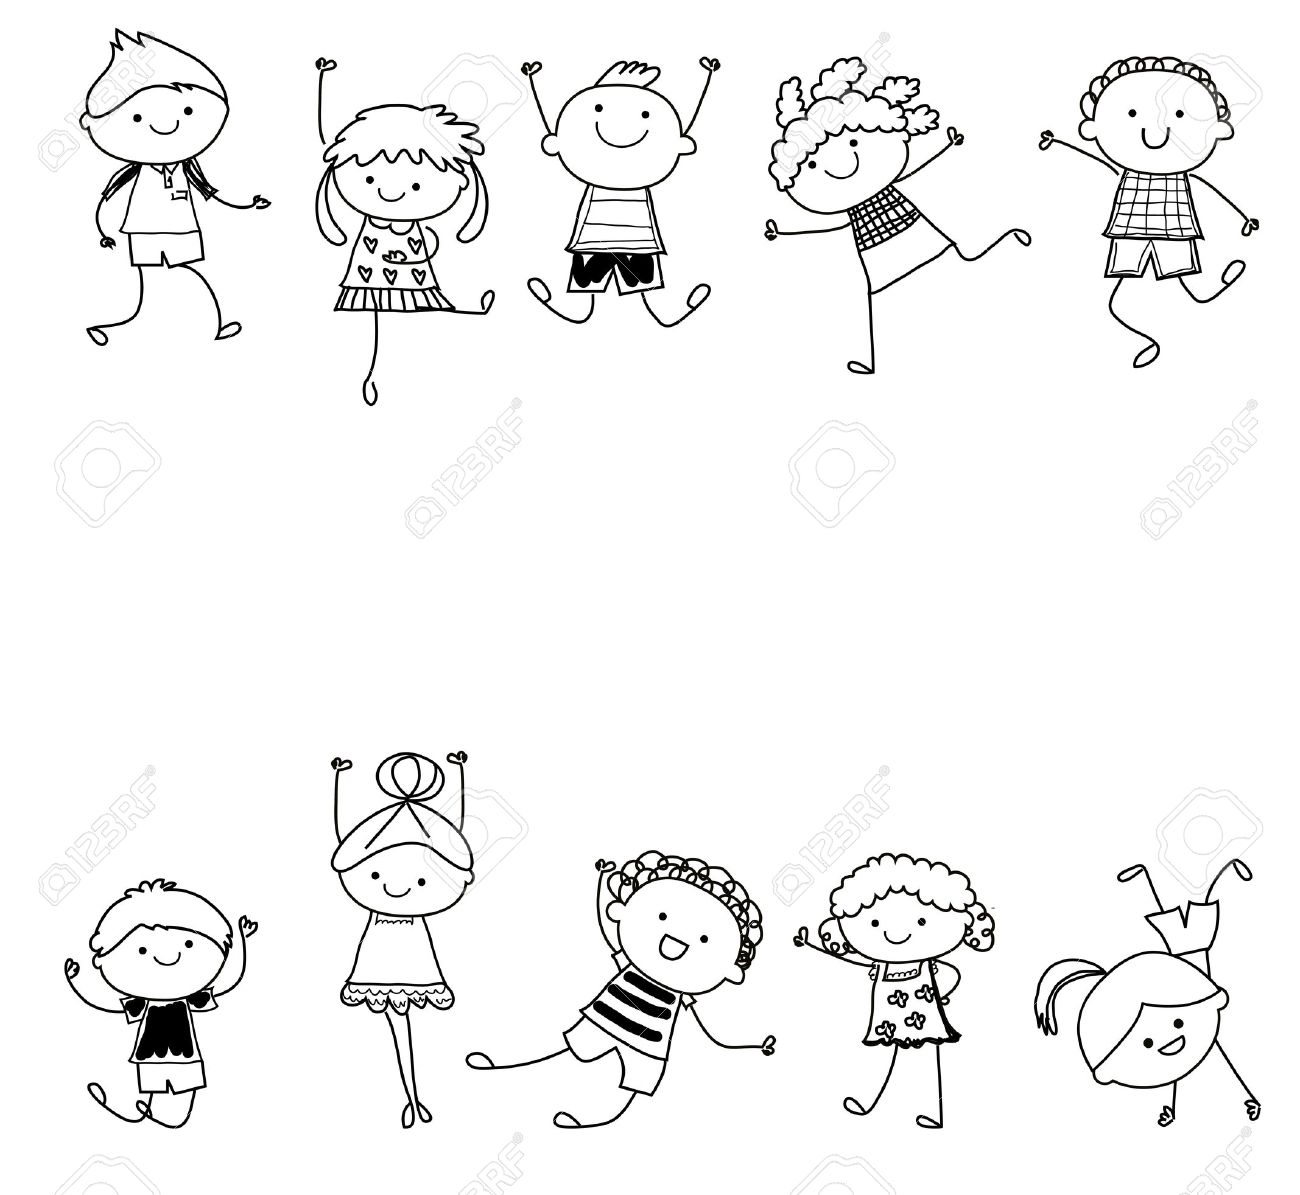 1300x1195 Drawing Sketch For Kids Drawings On Diwali Festival For Children